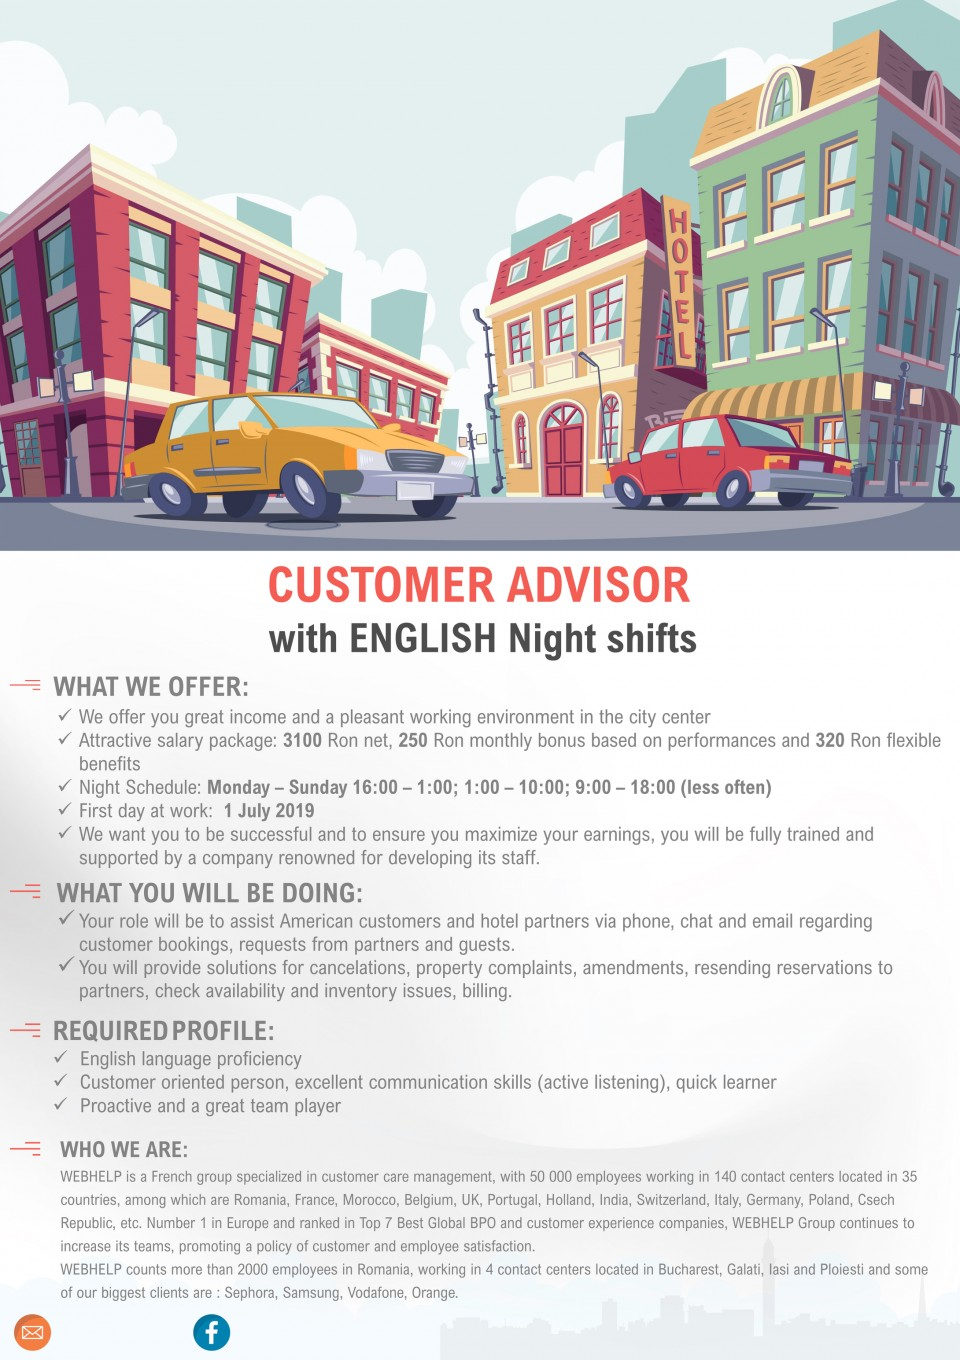 Customer Advisor with English Night Shifts